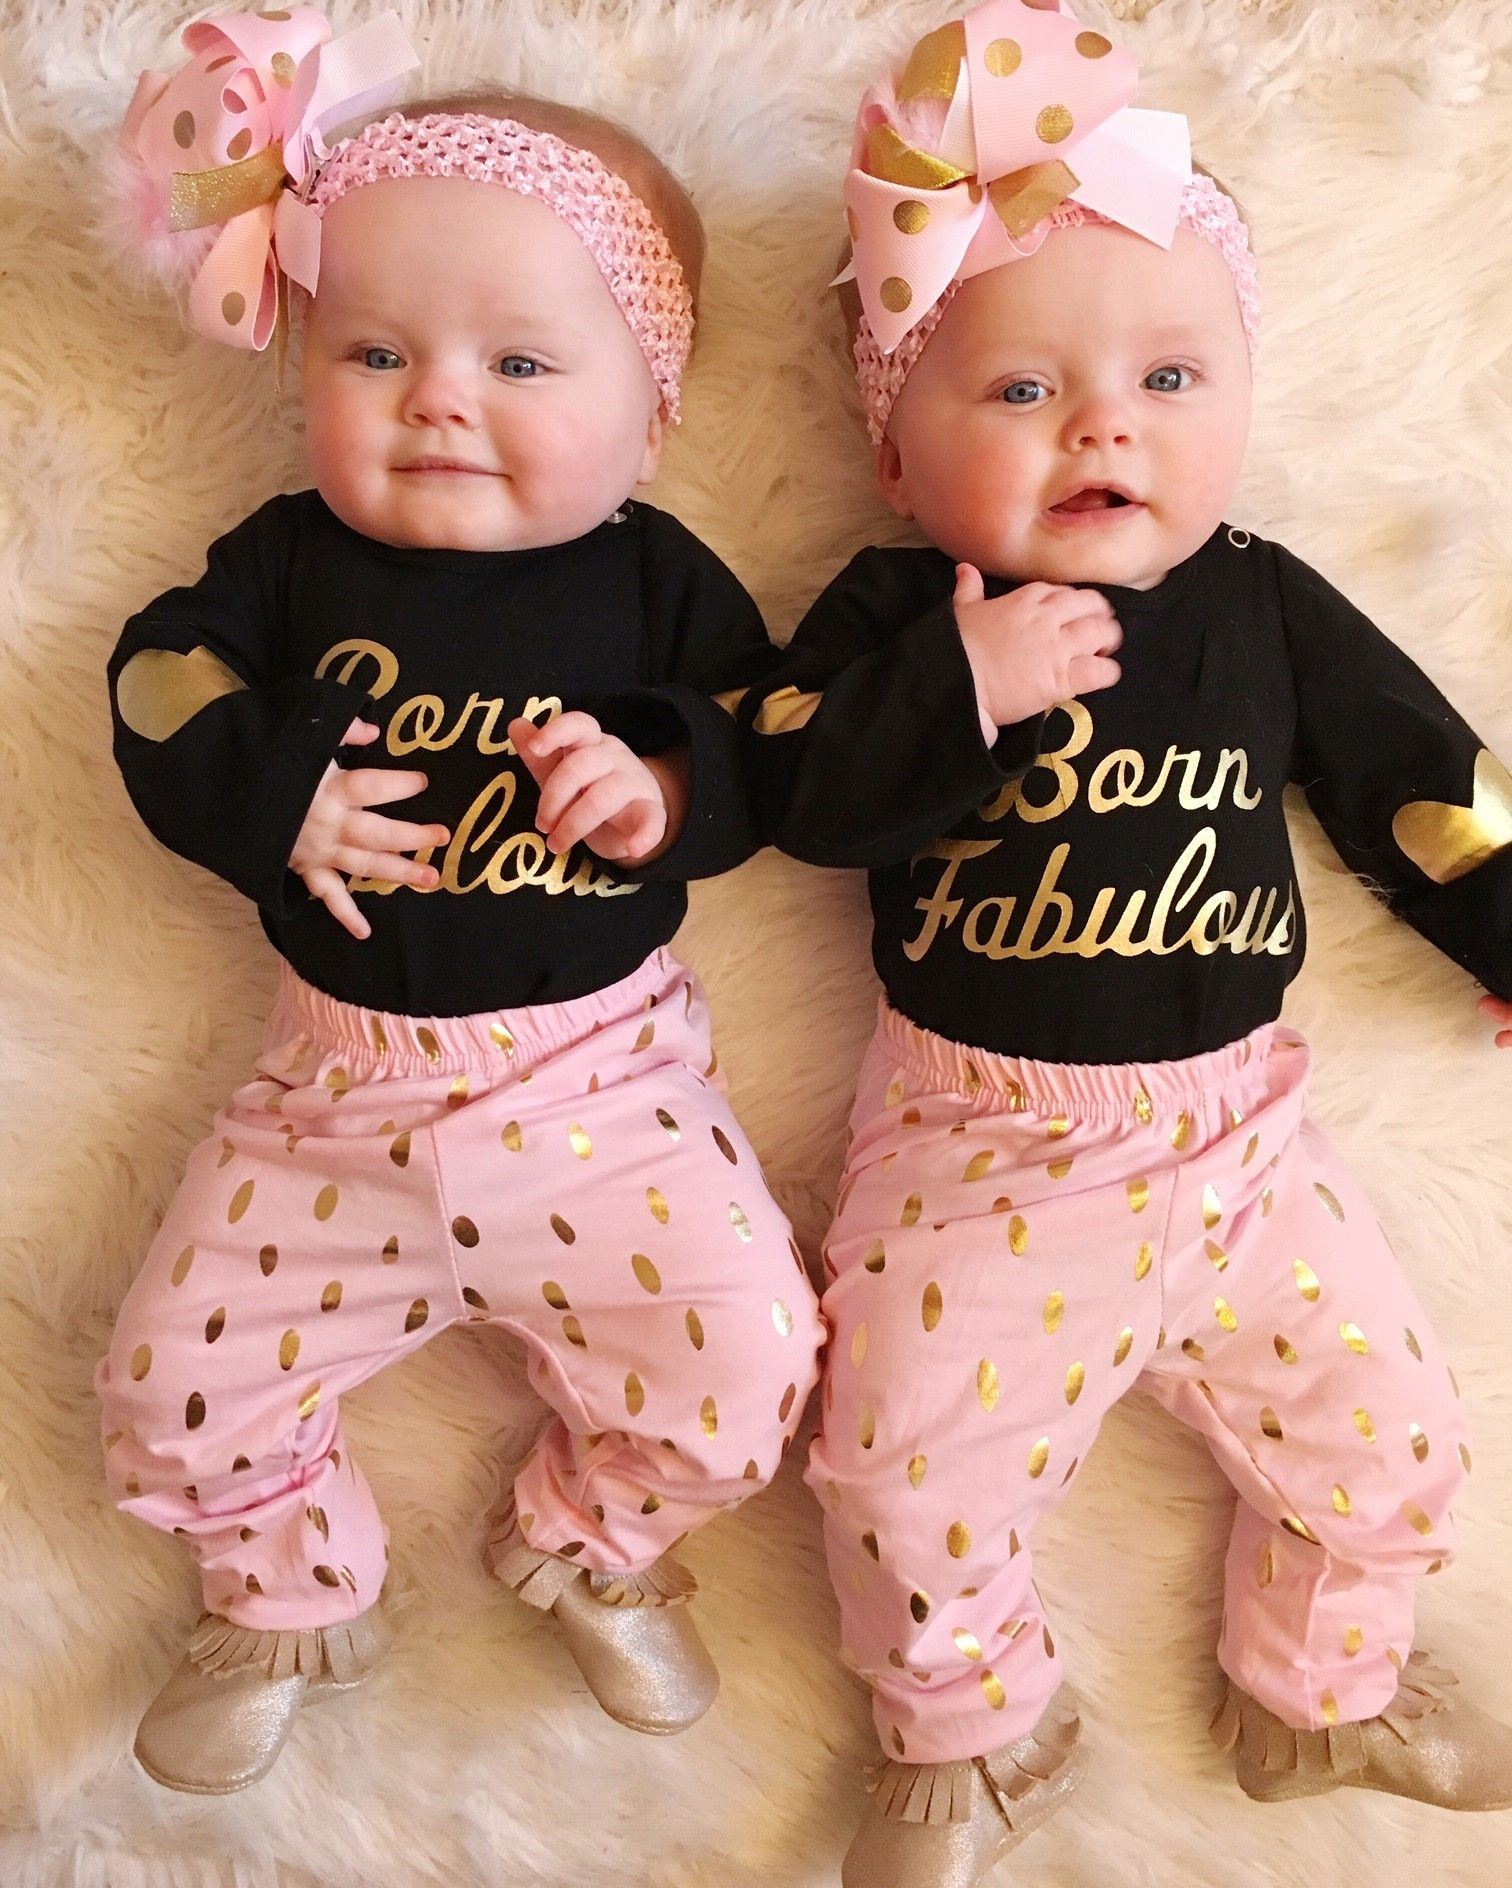 SugarBabies Chic and Trendy Baby Clothing Boutique ejobnet